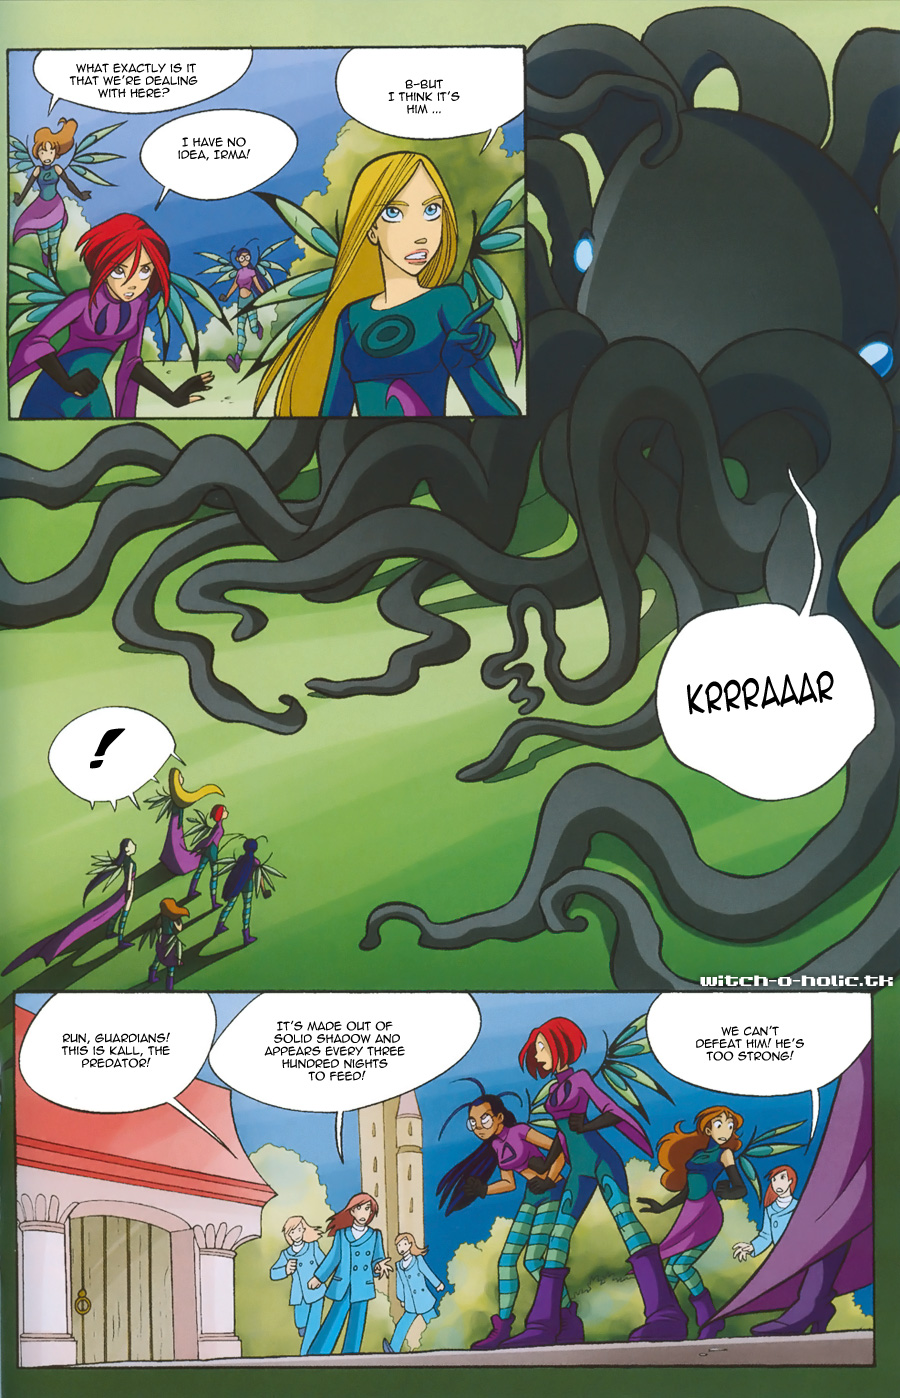 Read online W.i.t.c.h. comic -  Issue #135 - 23